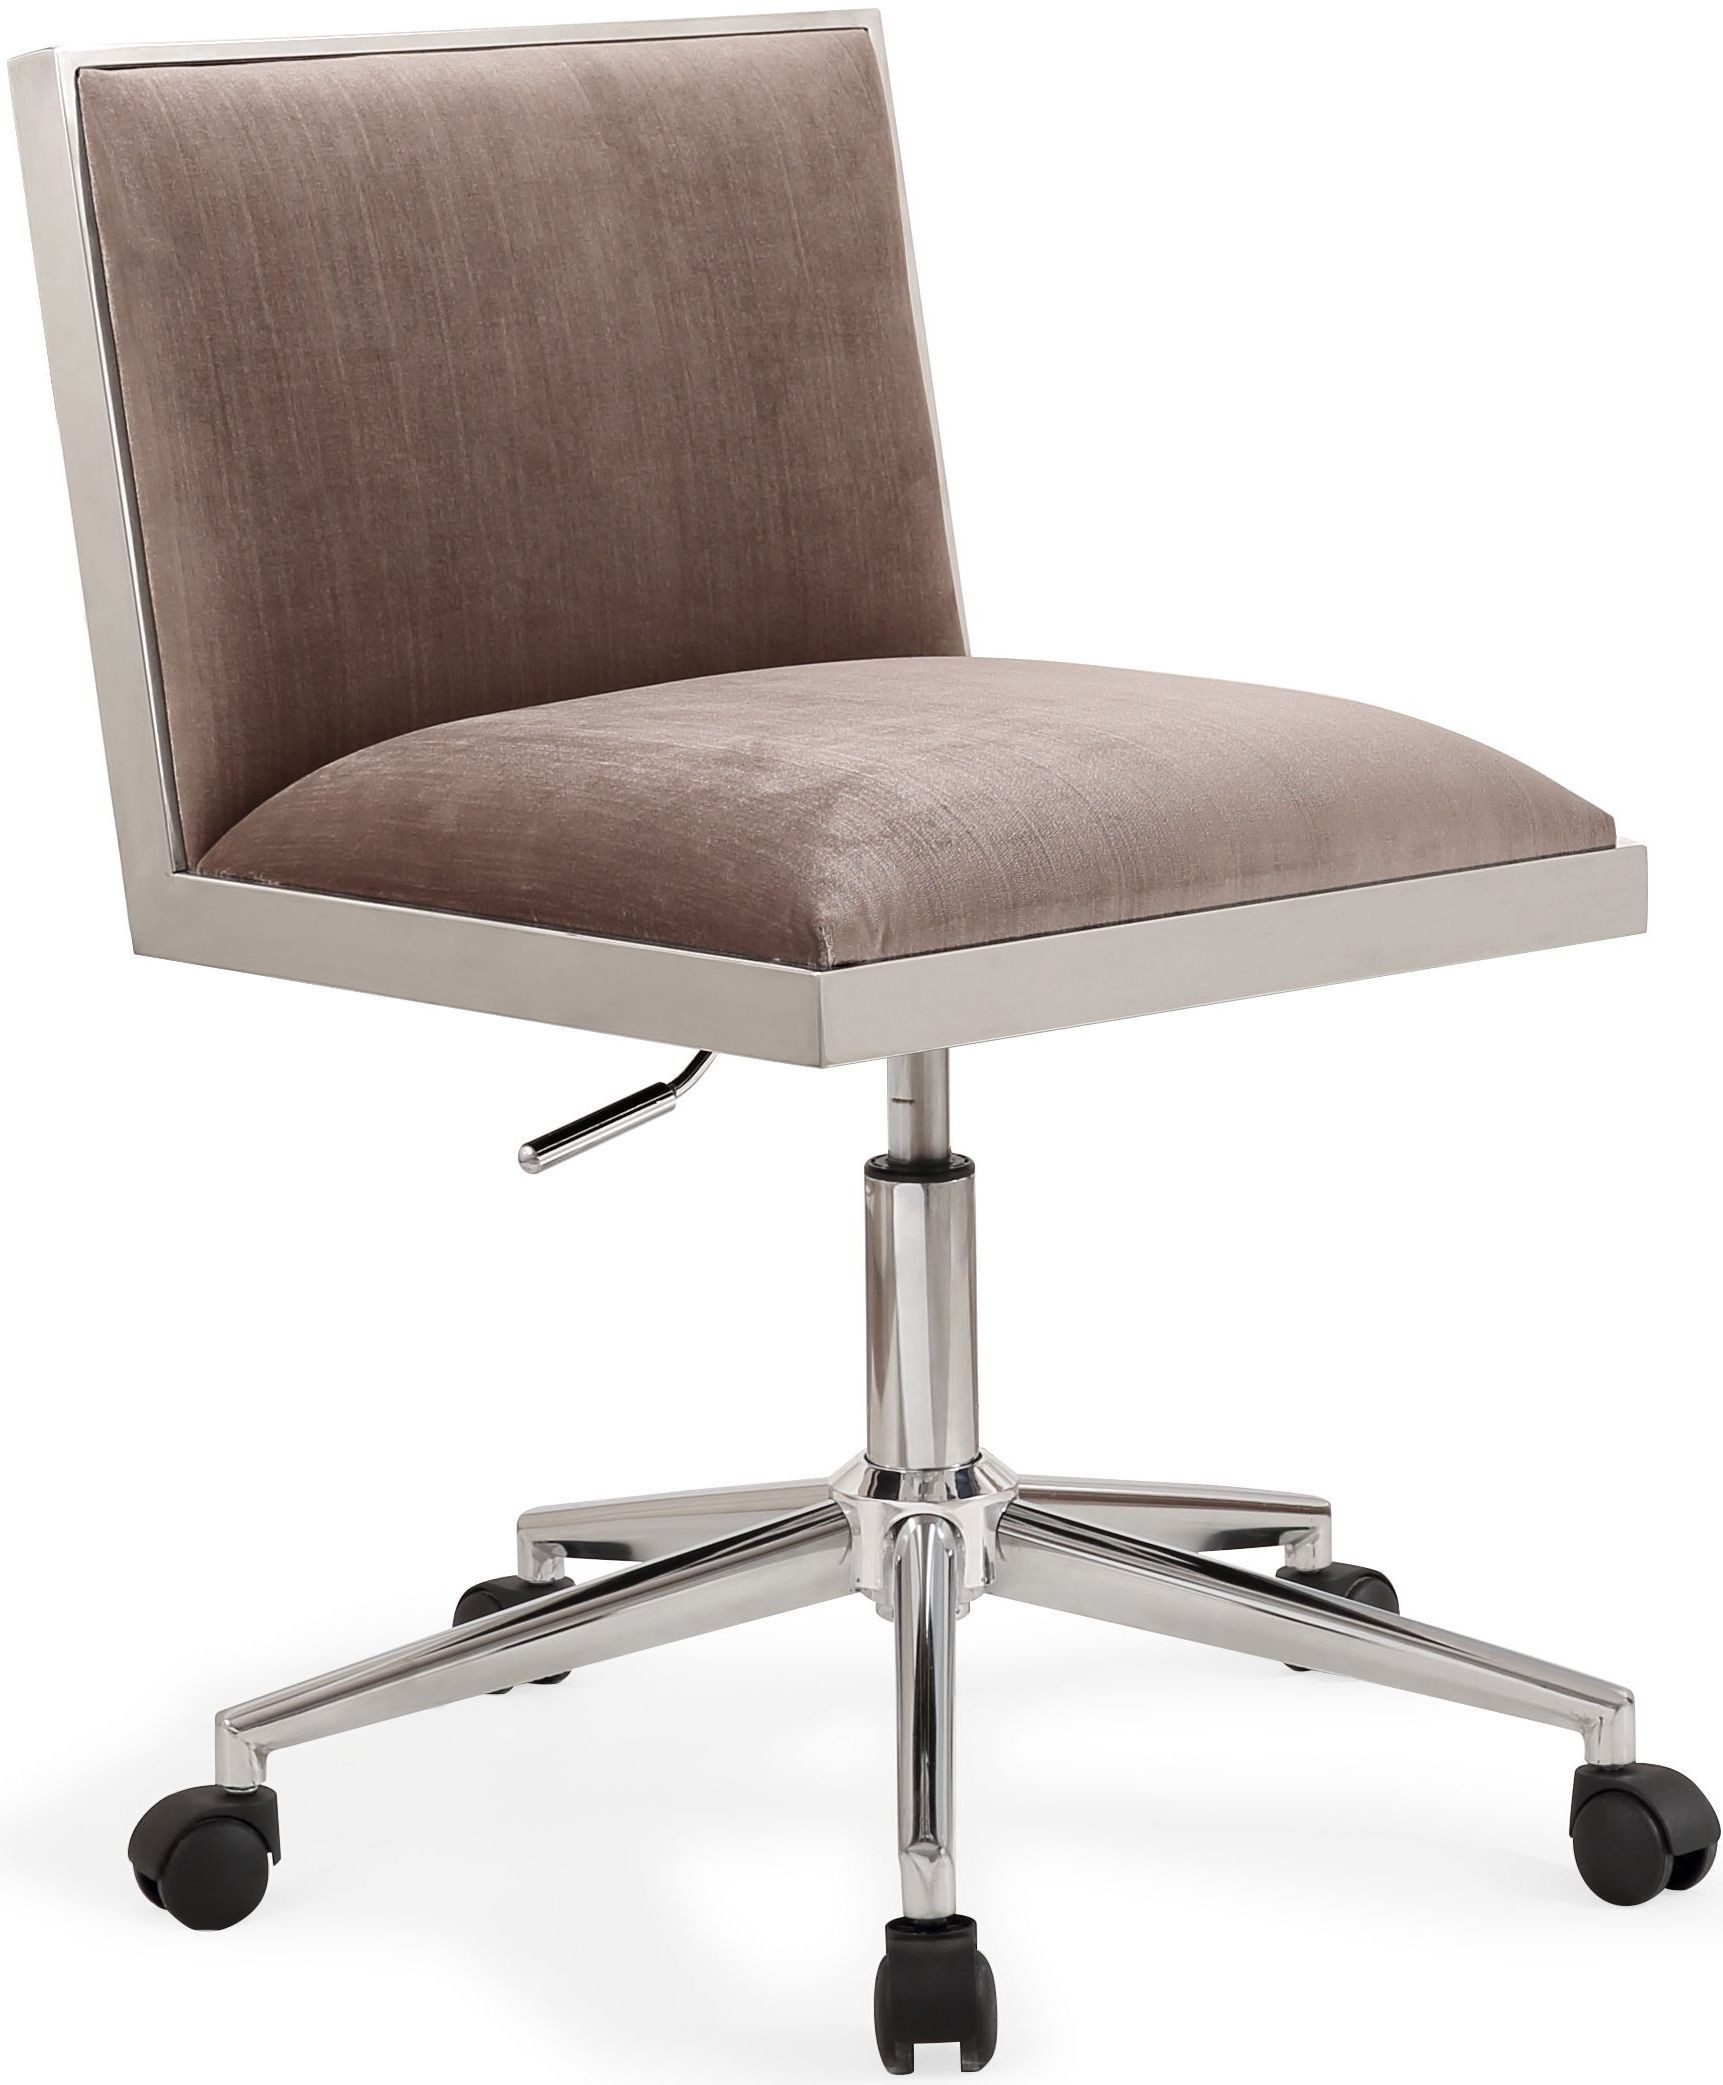 Velvet Desk Chair Harper Silver Velvet Office Chair H3715 Tov Furniture